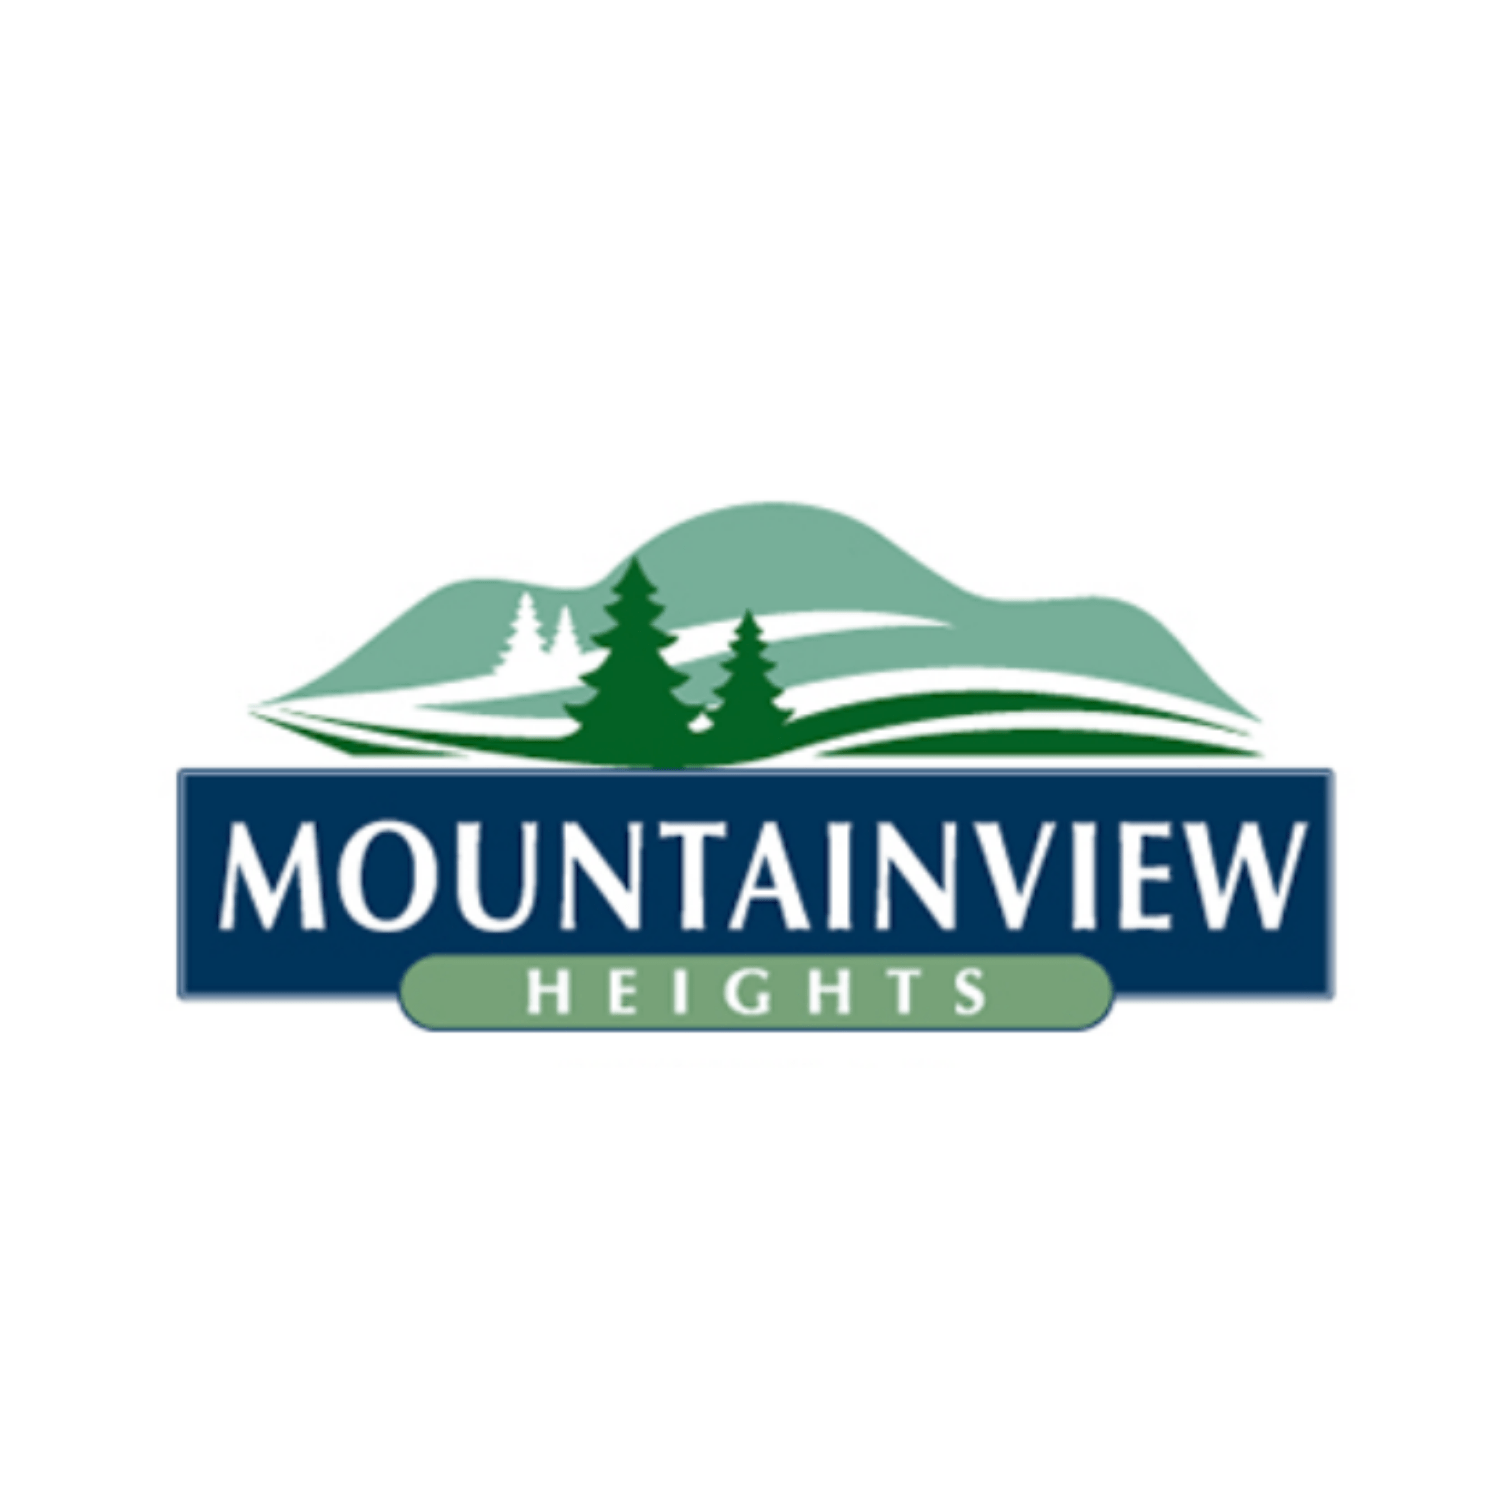 Mountainview Heights